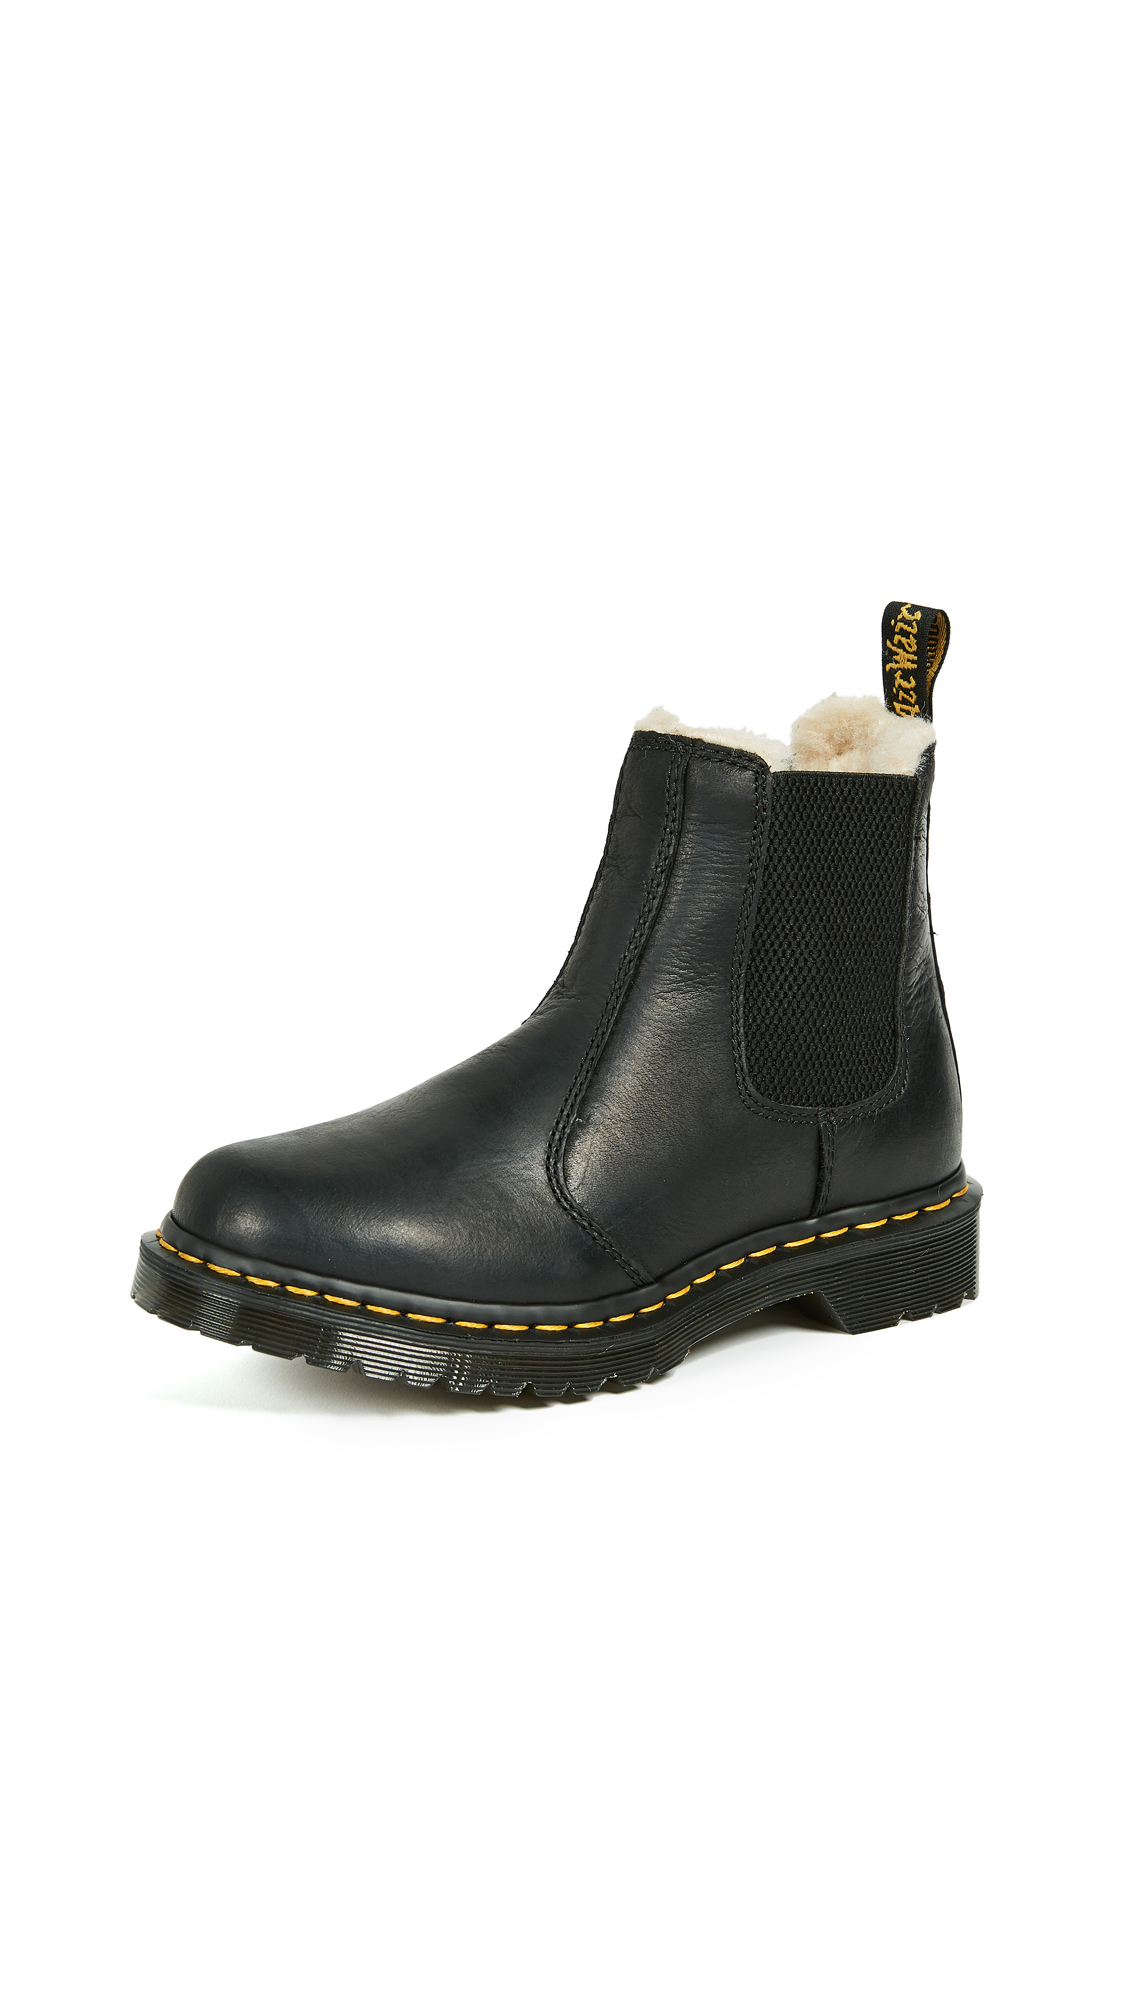 Dr. Martens Leonore Sherpa Chelsea Boots - Black